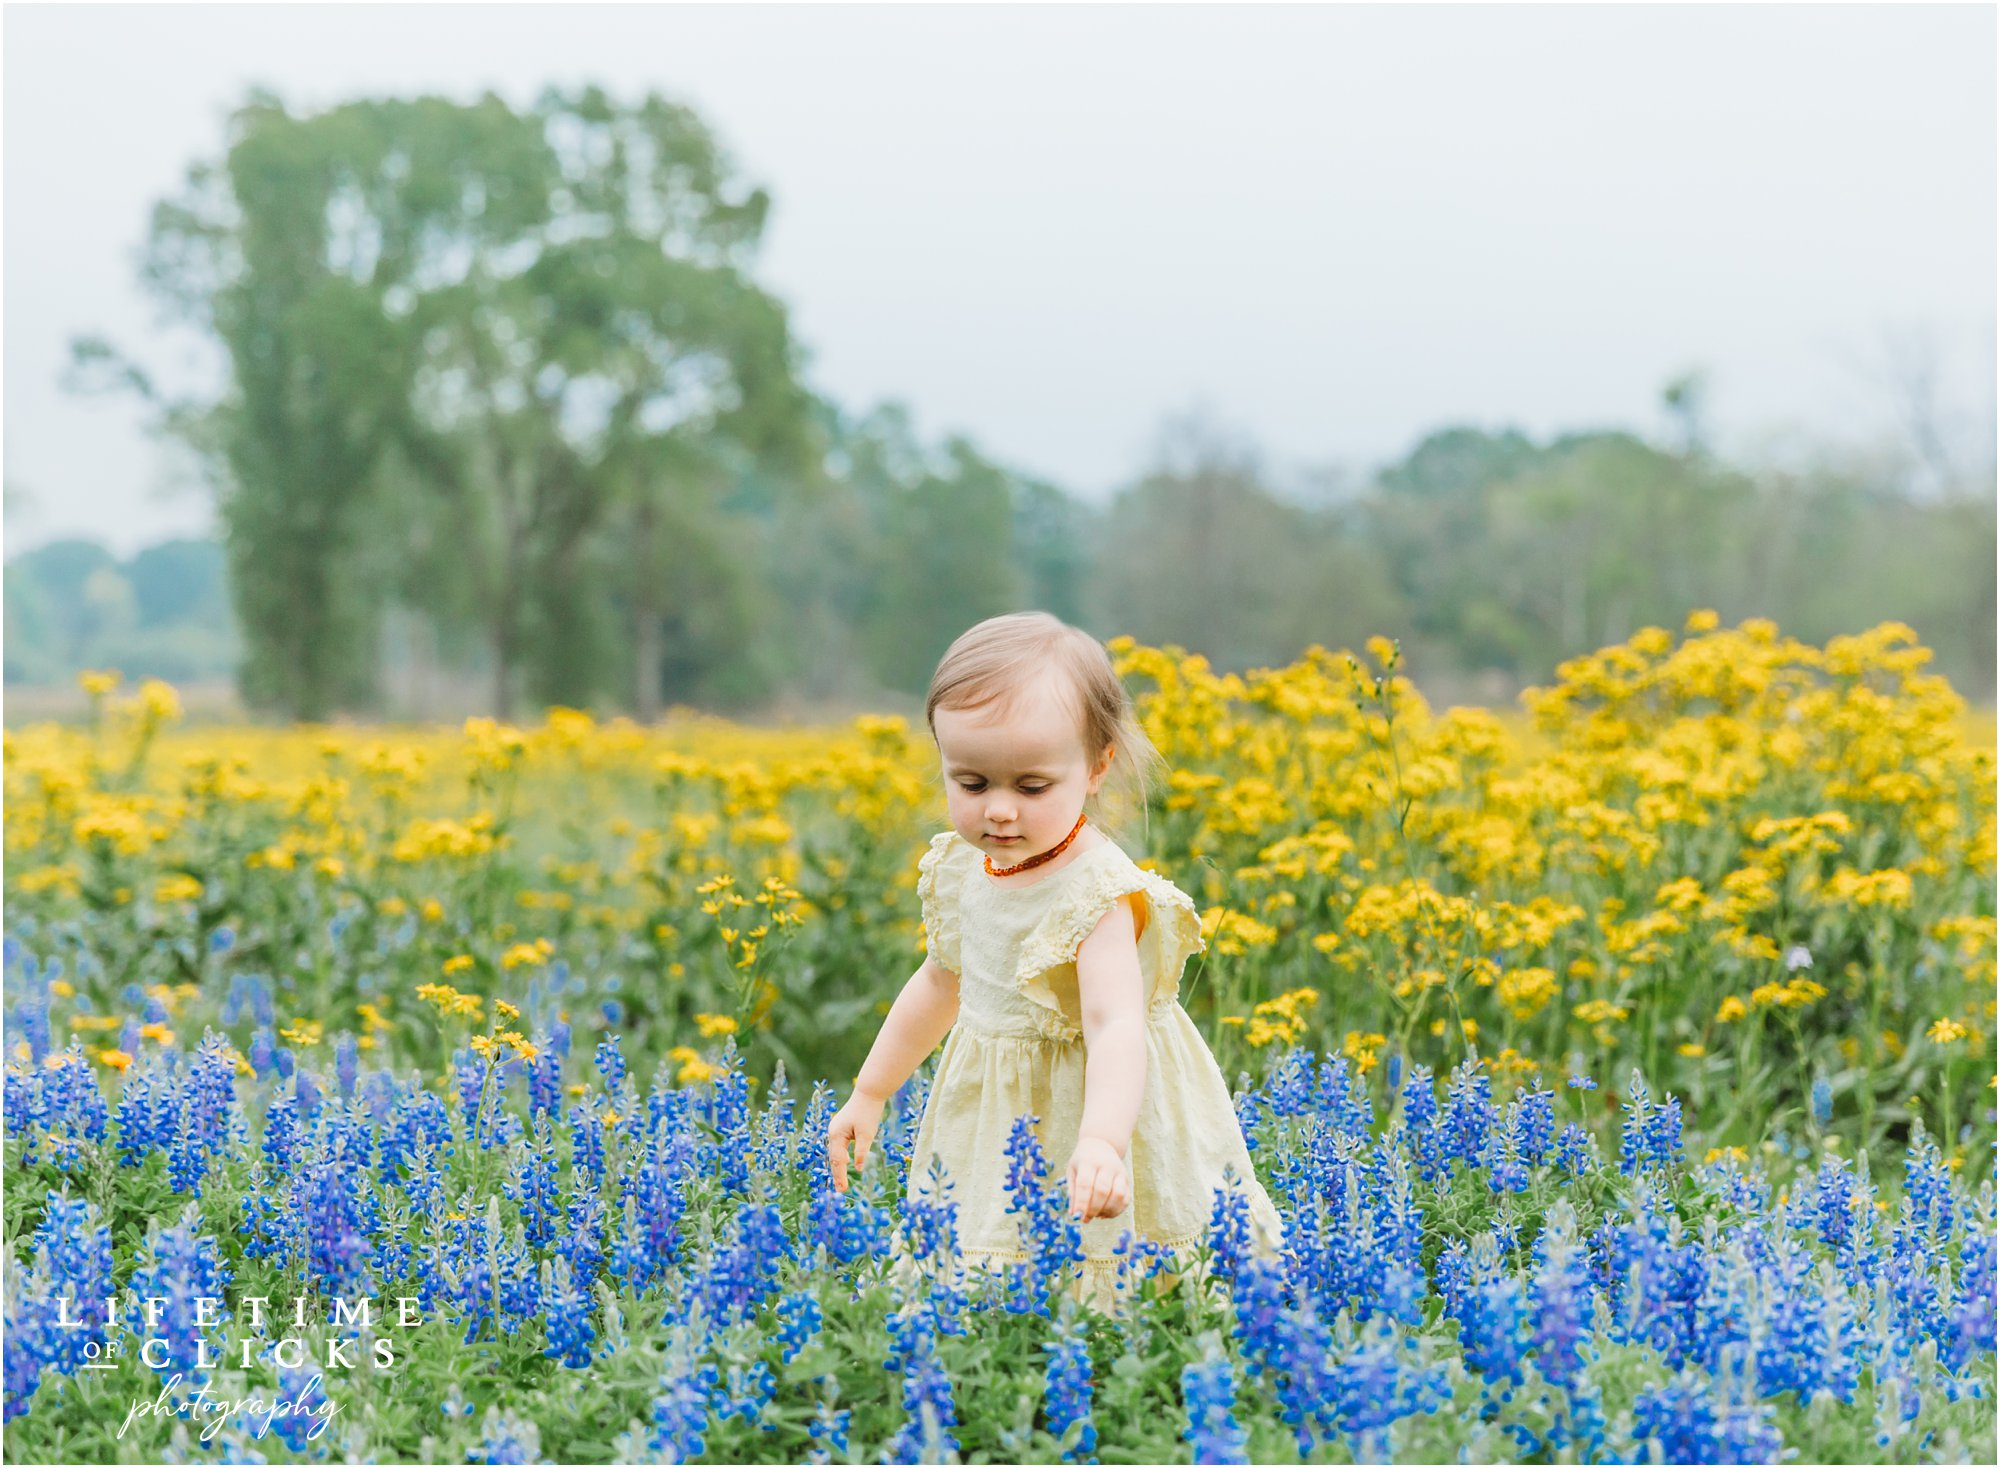 Candid photo of little girl in Bluebonnets